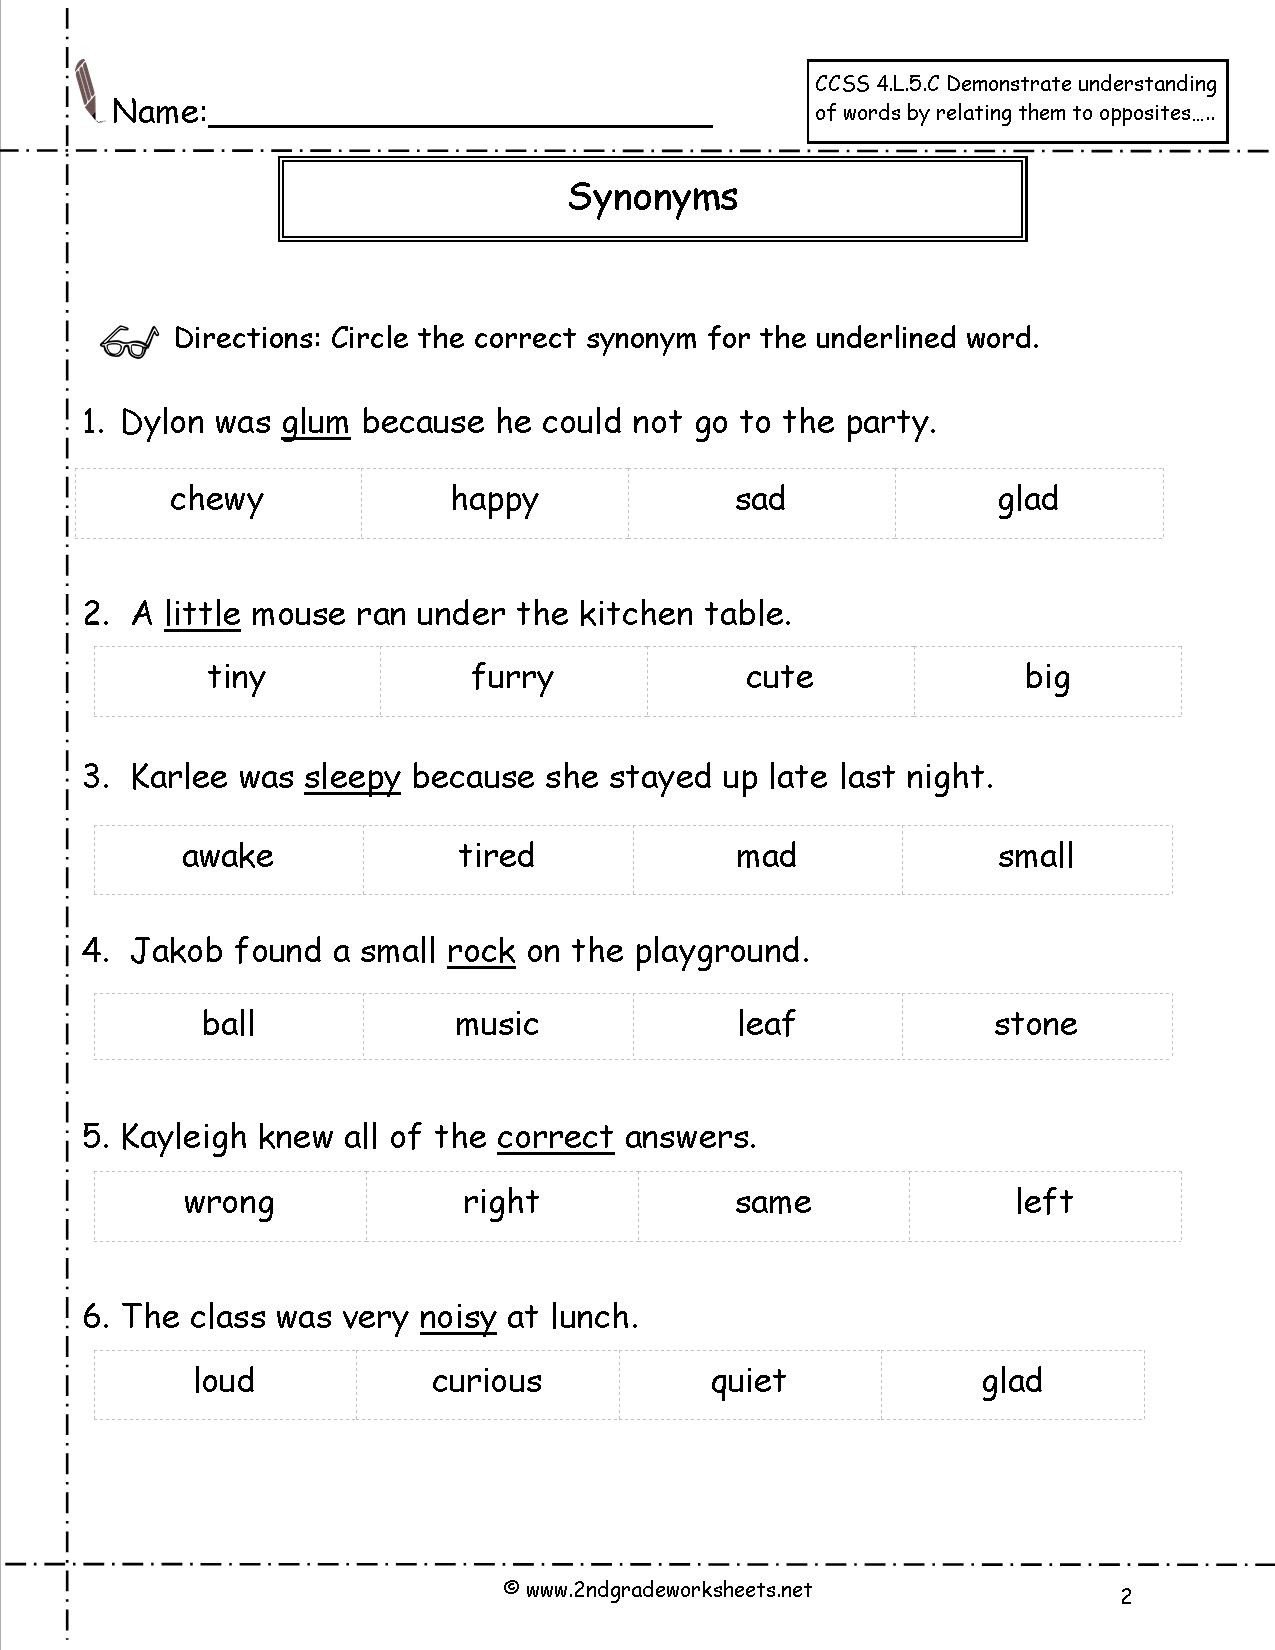 Antonyms Worksheets 3rd Grade Synonyms and Antonyms Worksheets Antonym for Third Grade